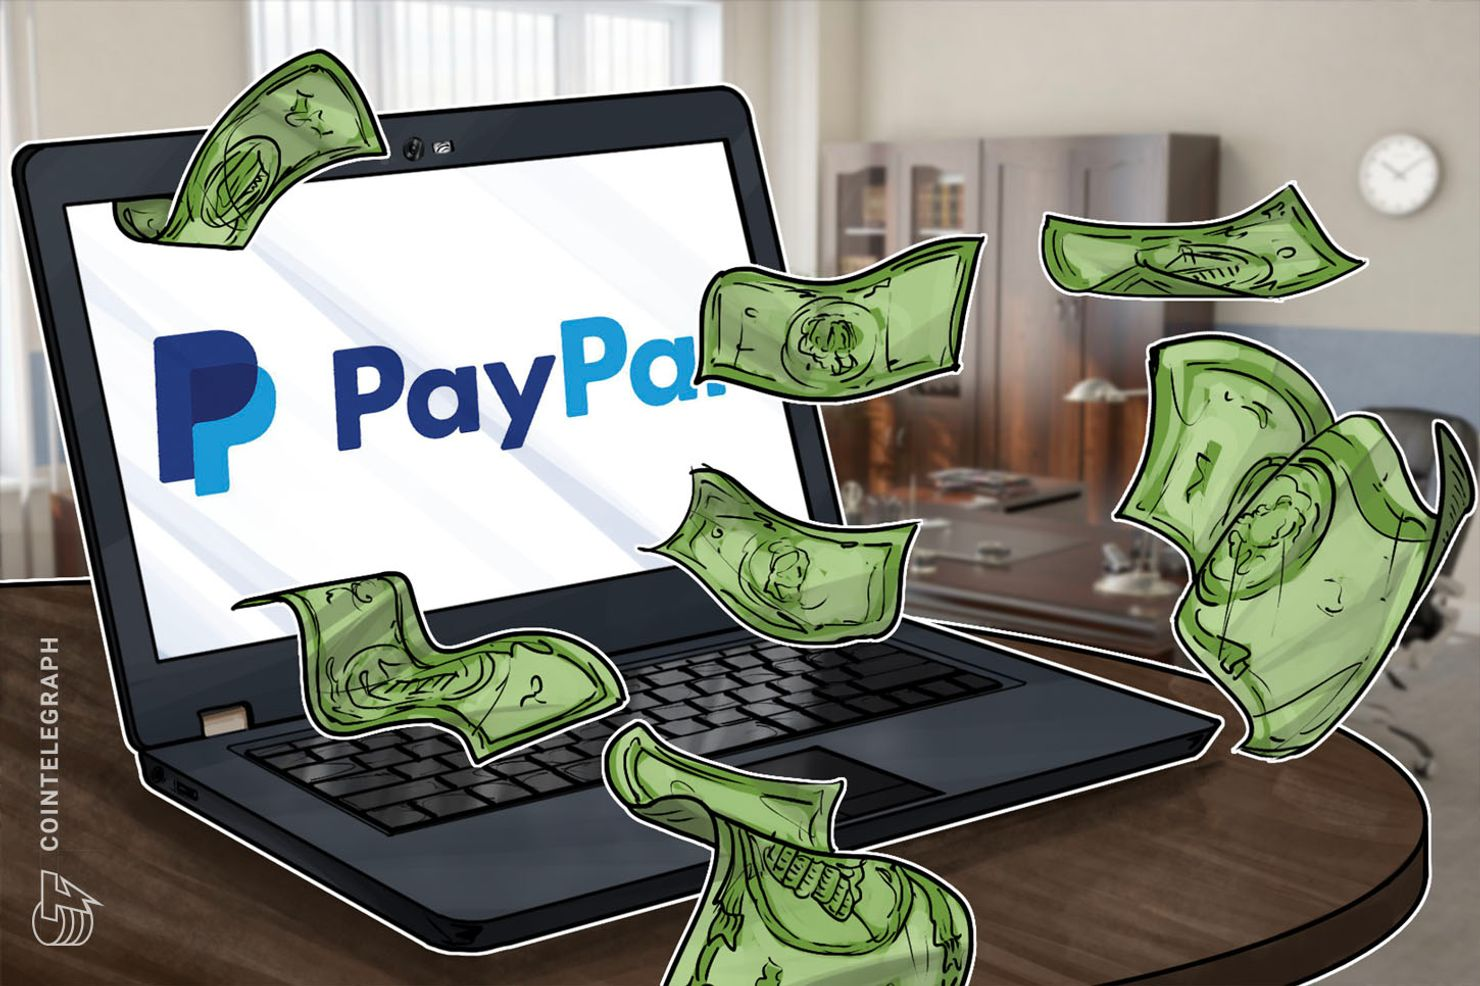 Major US Crypto Exchange Coinbase Adds Cash Withdrawals to PayPal